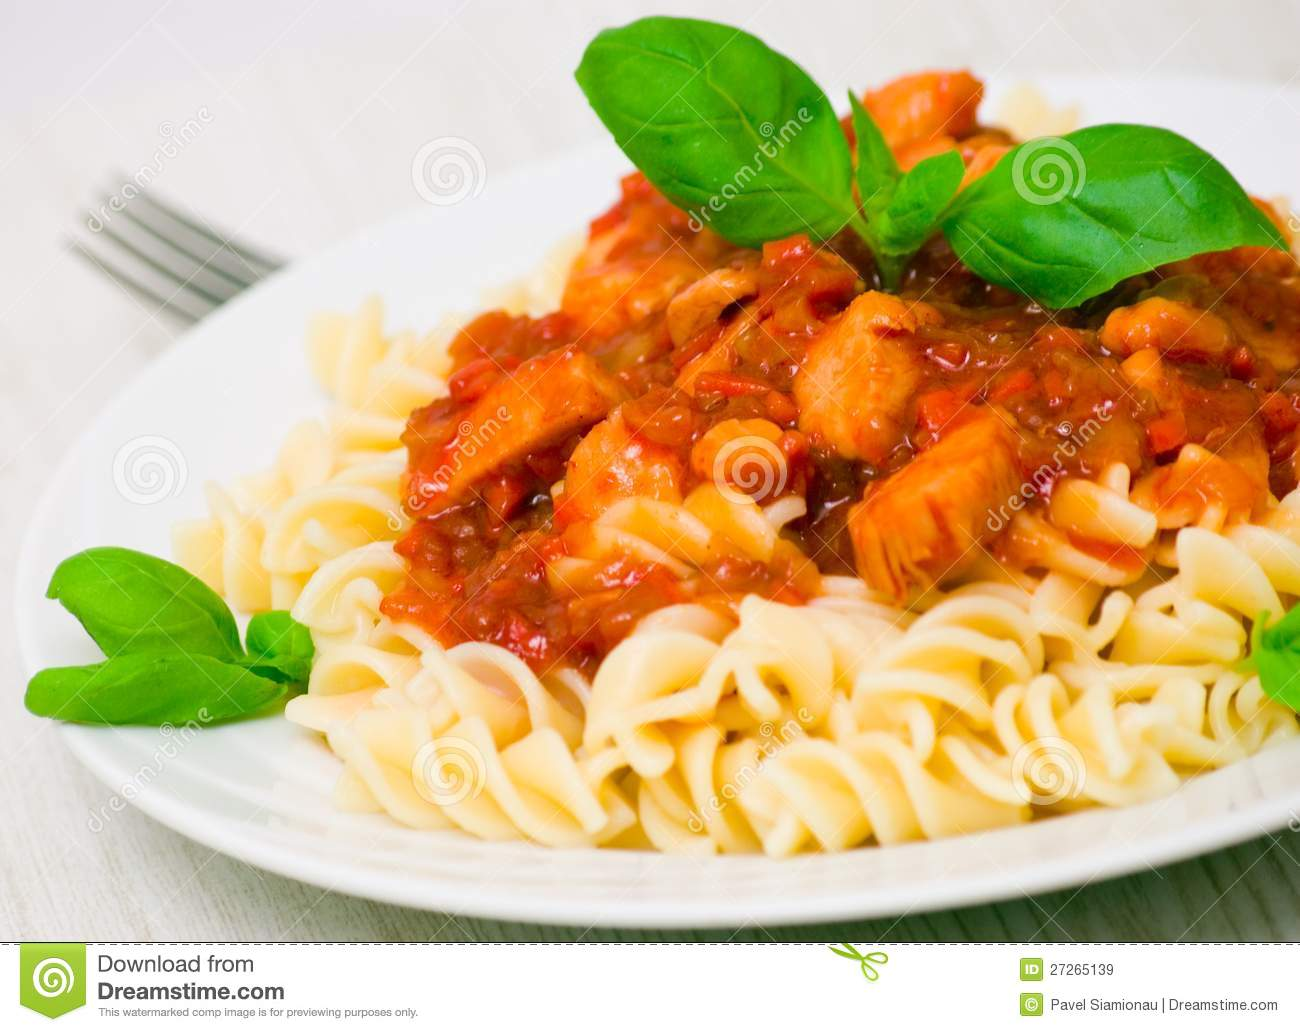 Fusilli Pasta With Chicken Breast In Tomato Sauce Royalty Free Stock ...